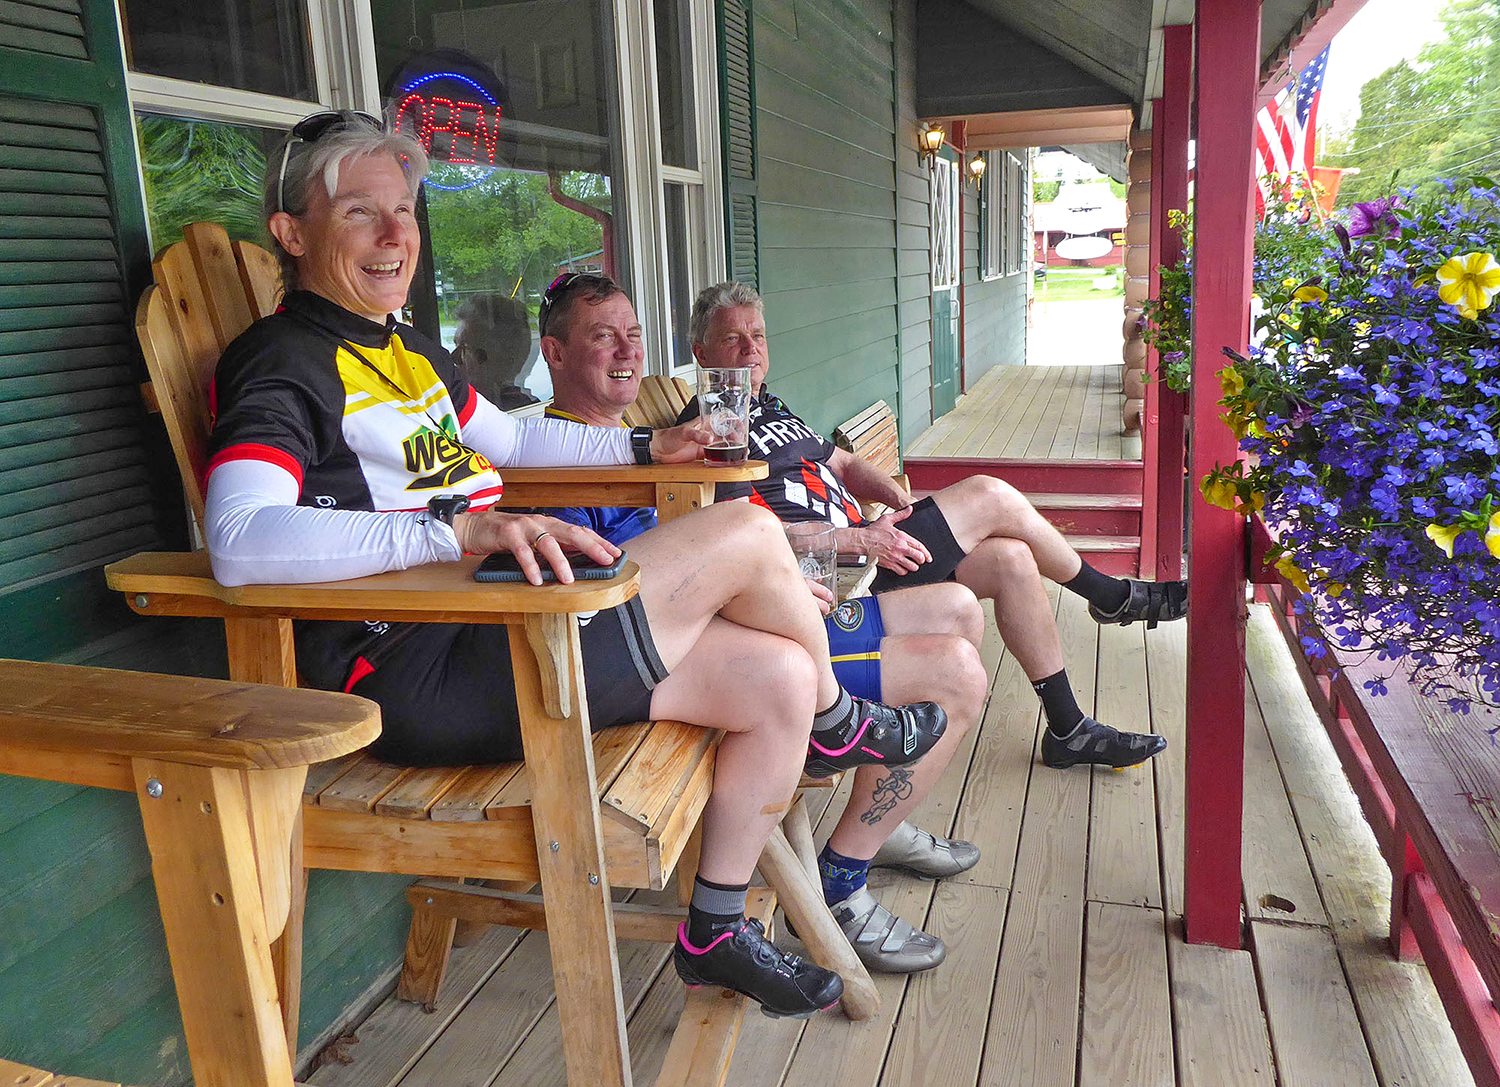 Elayne Livote enjoys the mid-ride stop at Fulton Chain Craft Brewery in Old Forge.  Dave Kraus/   KrausGrafik.com